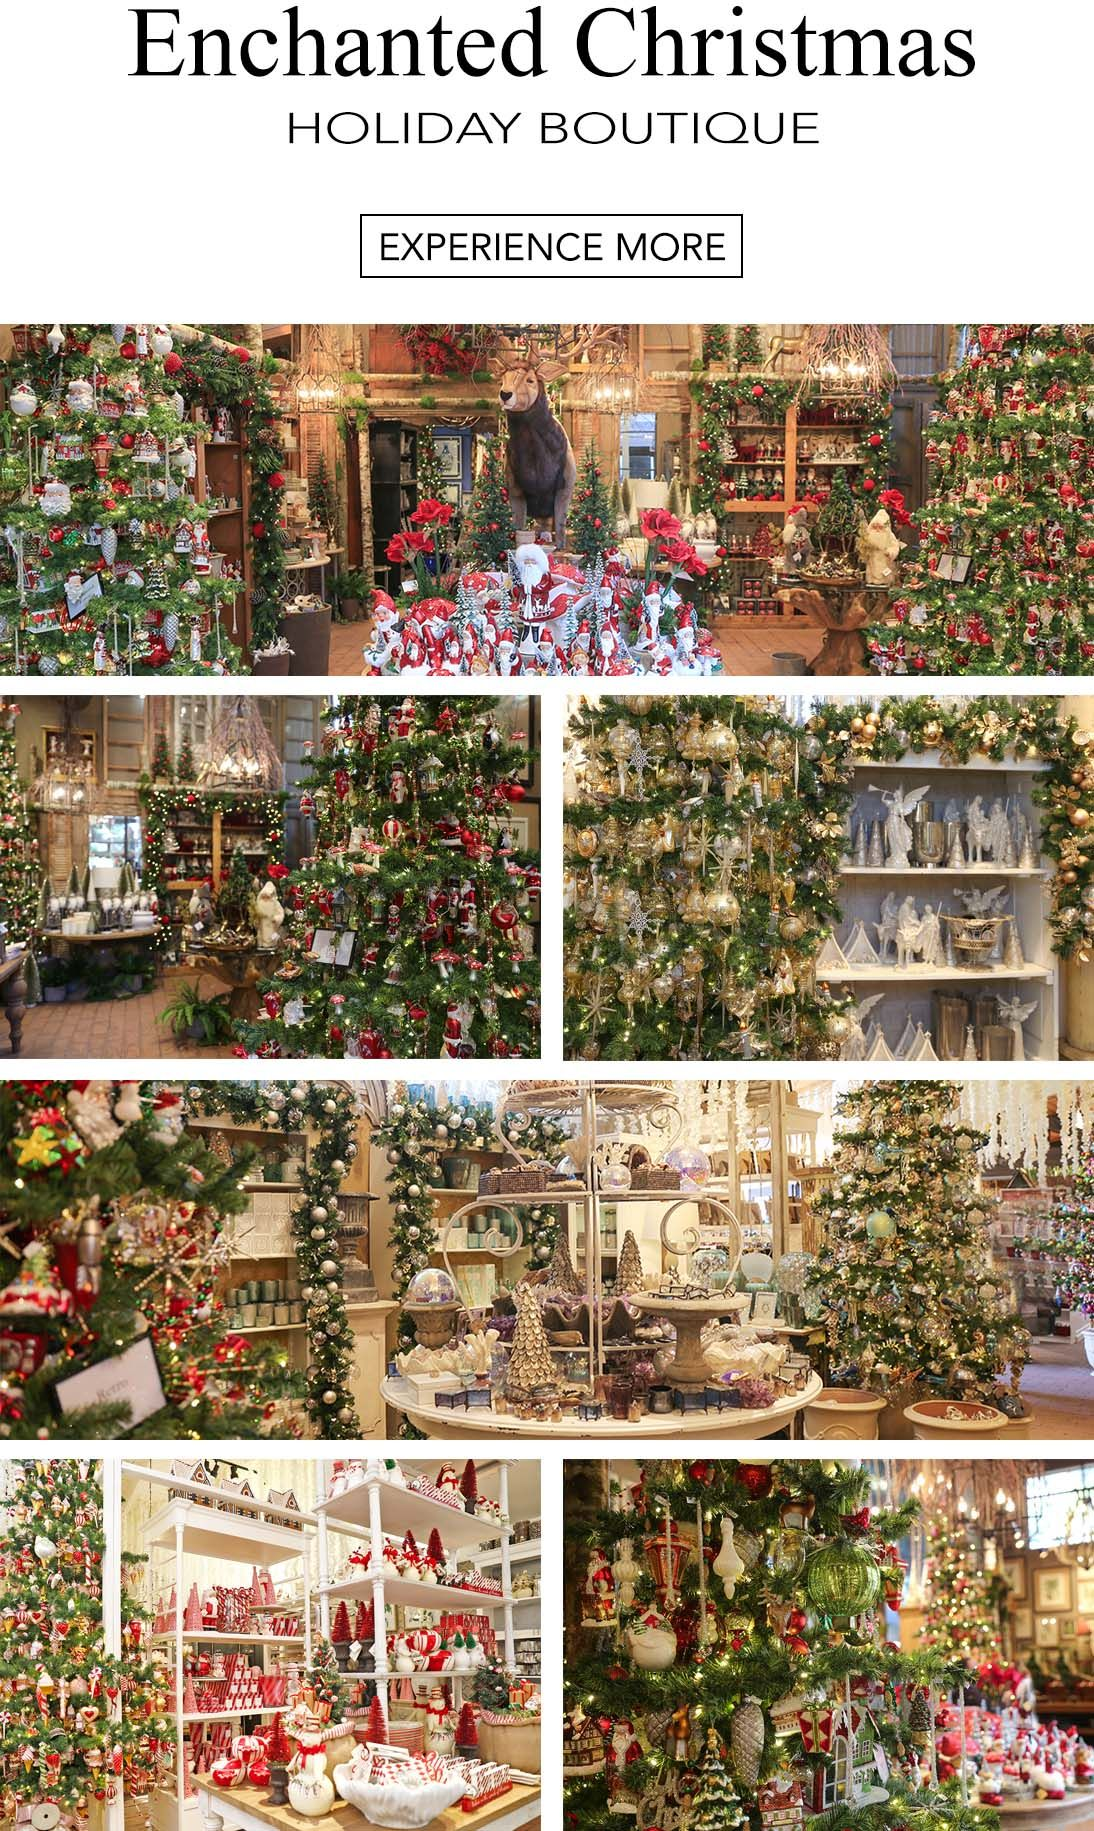 When Does Rogers Gardens Decorated For Christmas